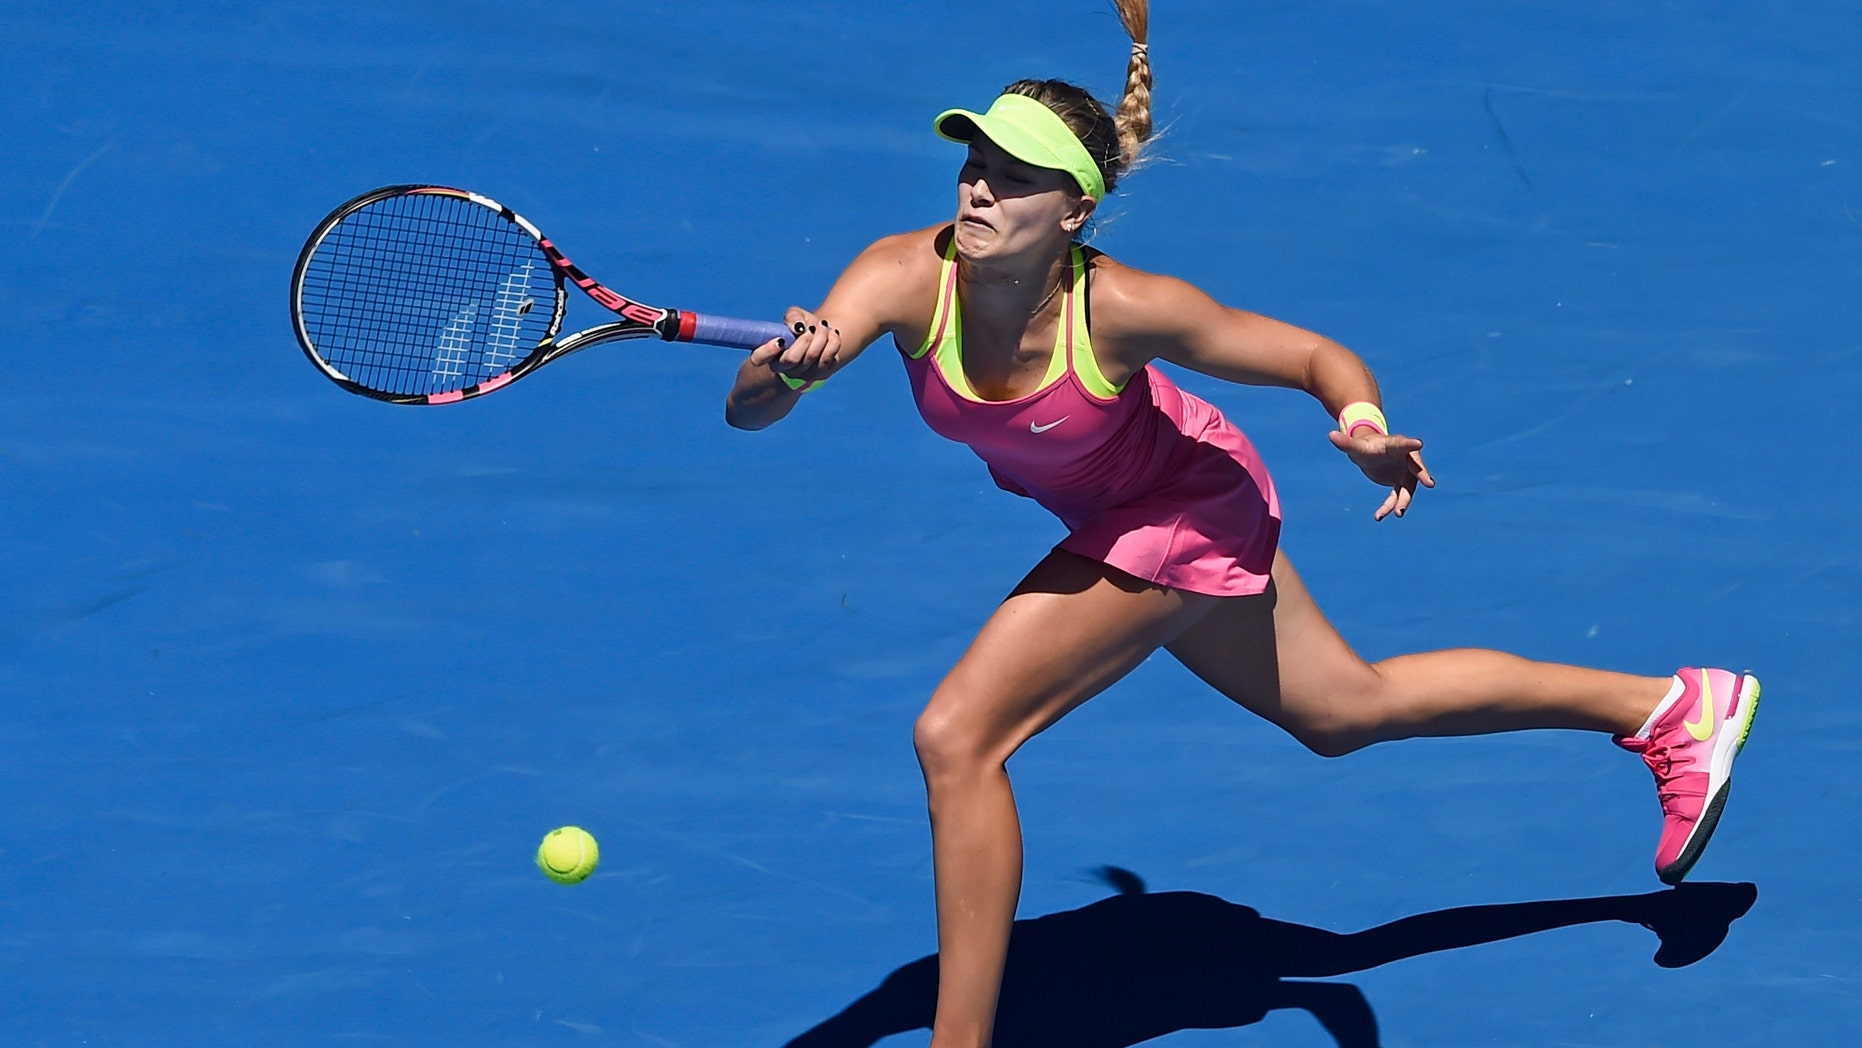 Jan. 23, 2015 - Eugenie Bouchard of Canada chases down a shot to Caroline Garcia of France during their third round match at the Australian Open tennis championship in Melbourne, Australia Friday.